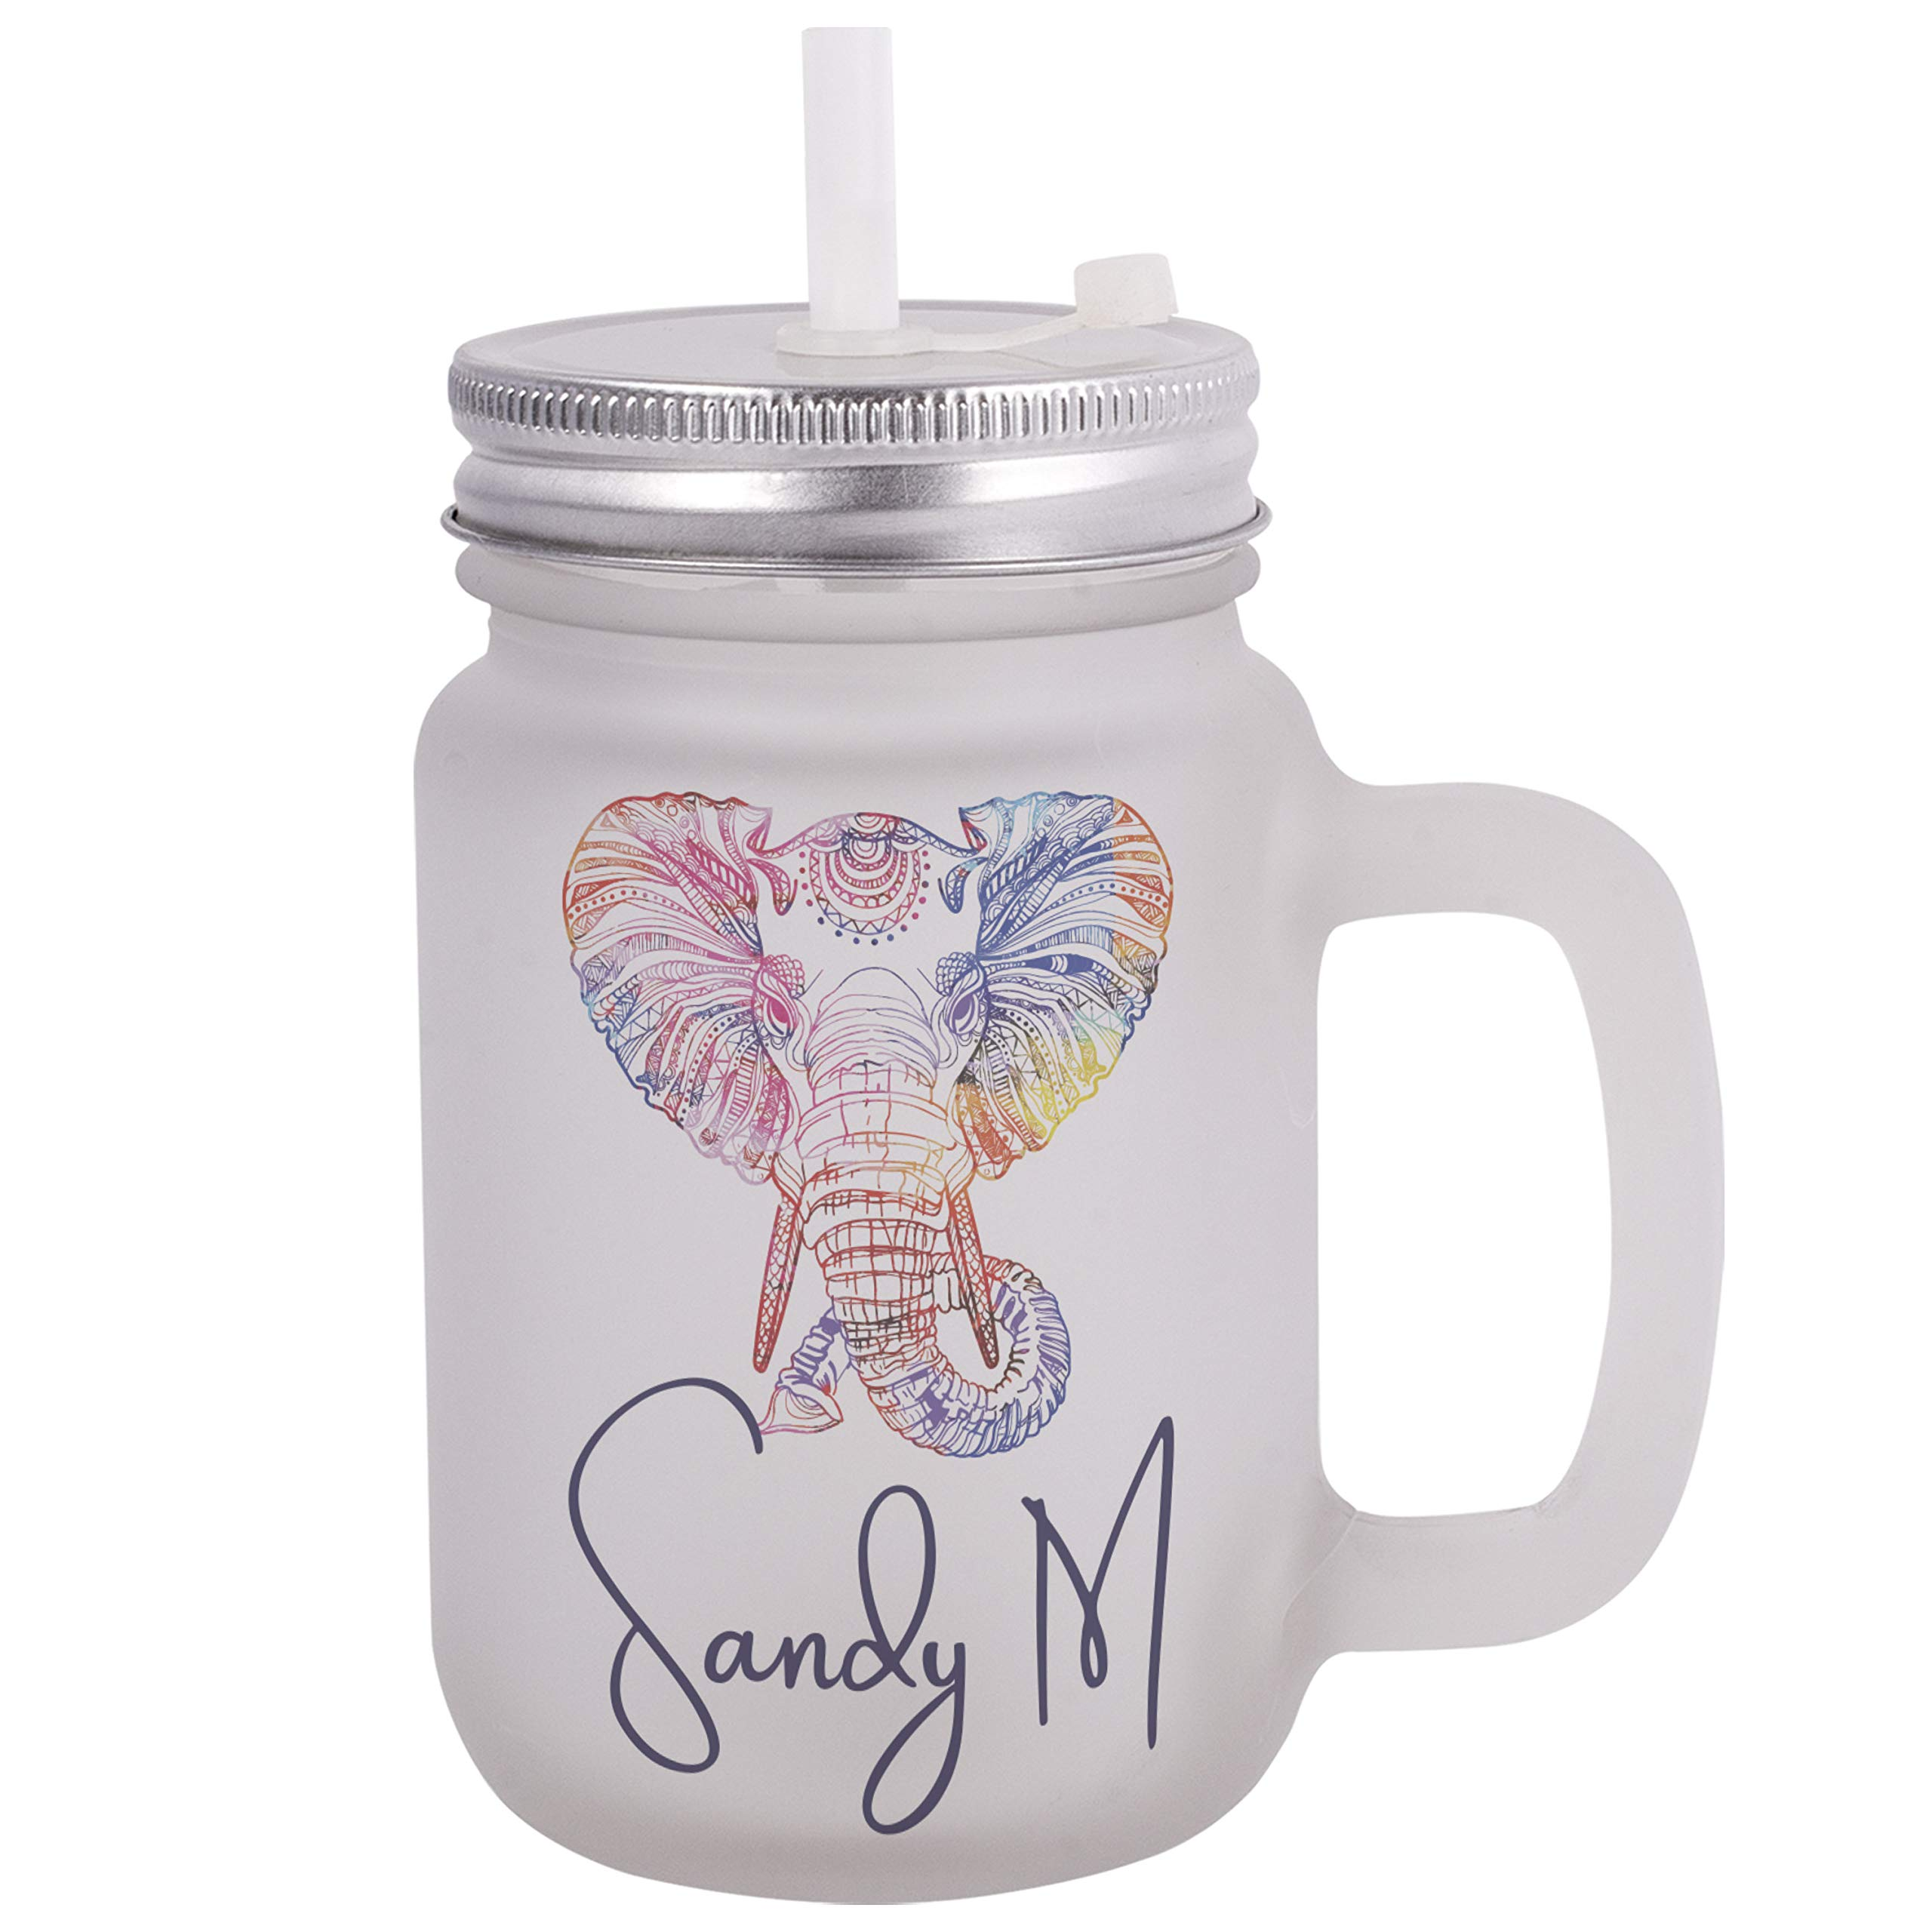 Personalized Gifts Colorful Elephant Coffee Mug - 12oz Frosted Mason Jar Coffee Mug with Lid and Straw -Birthday Gifts, Christmas Gifts, Mother's Day Gifts, Father's Day Gifts, Funny Mug for Kids